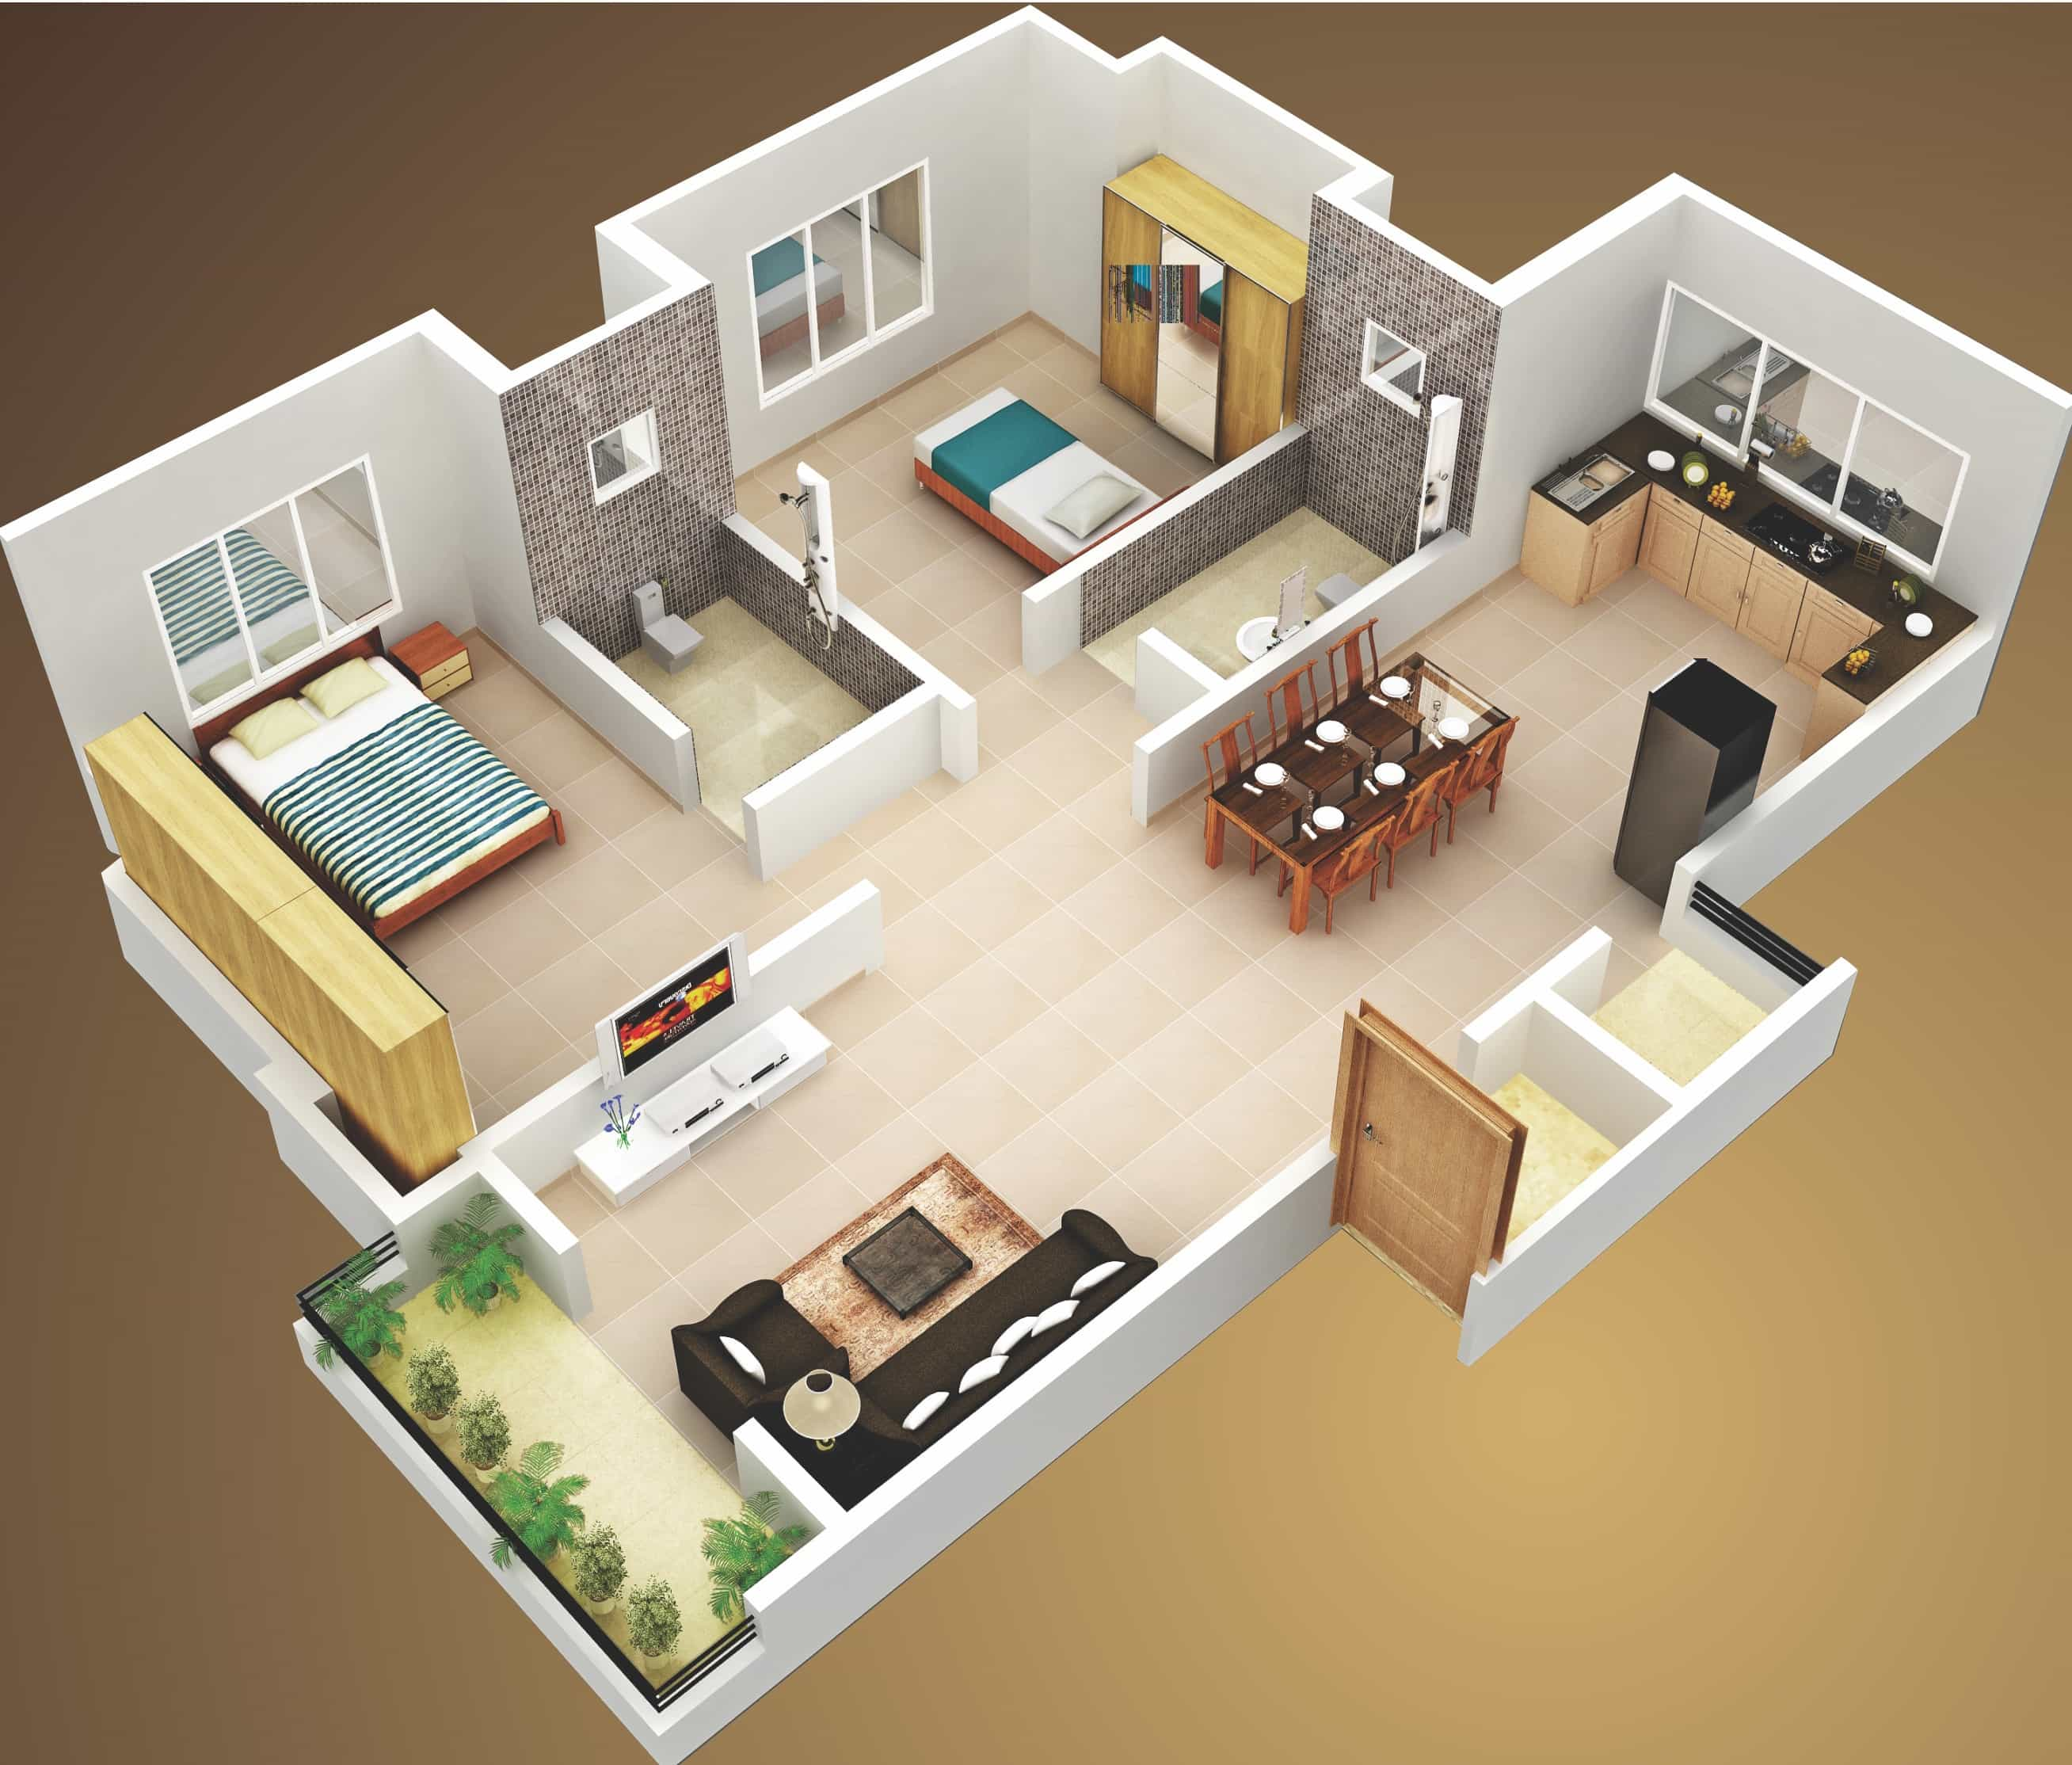 2 Bedroom Design Small House 3d Two Bedroom House Layout Design Plans 22449 Interior